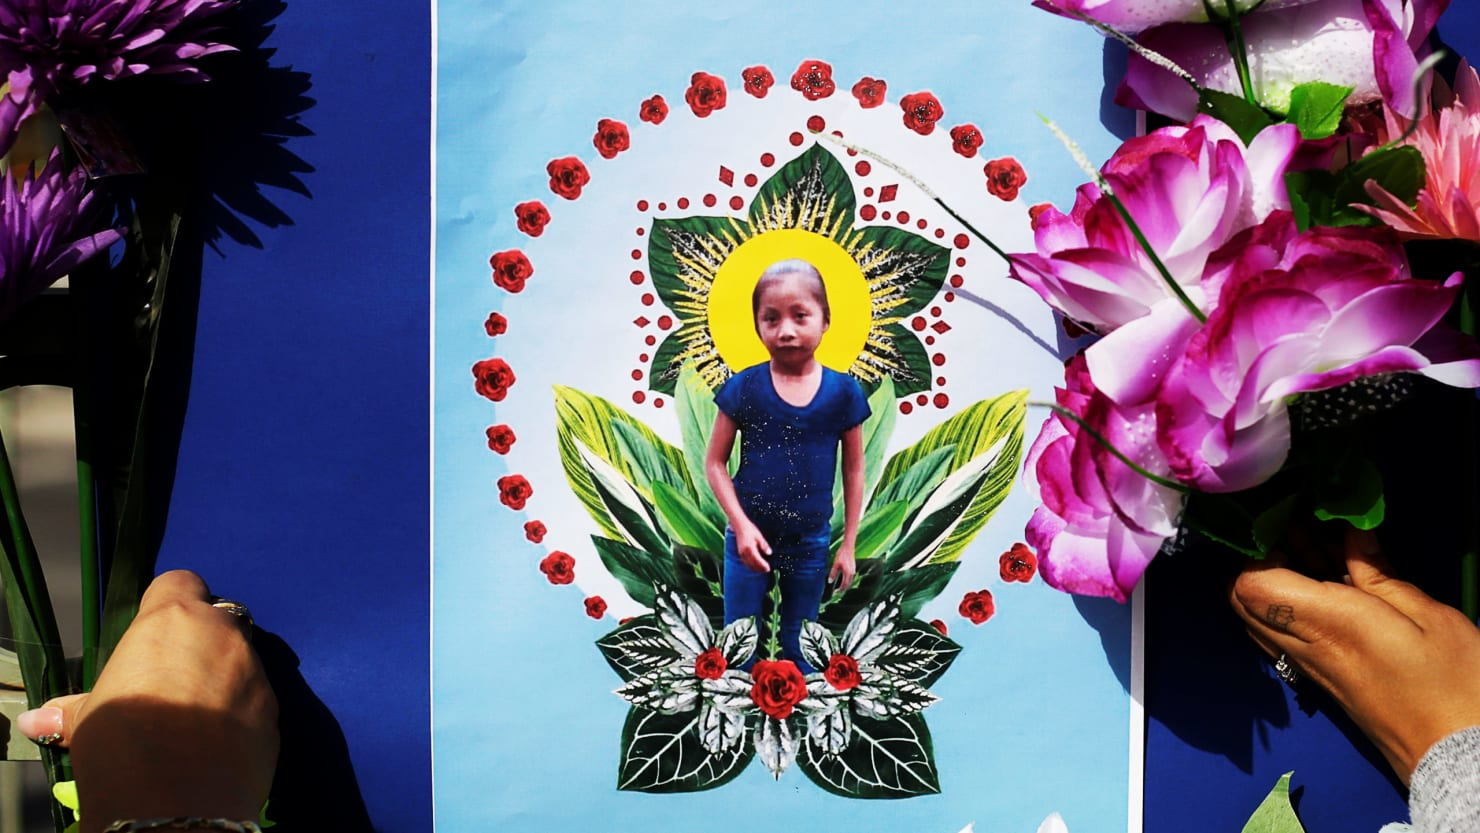 Jakelin Caal's Death Was Medically Cruel and Utterly Preventable